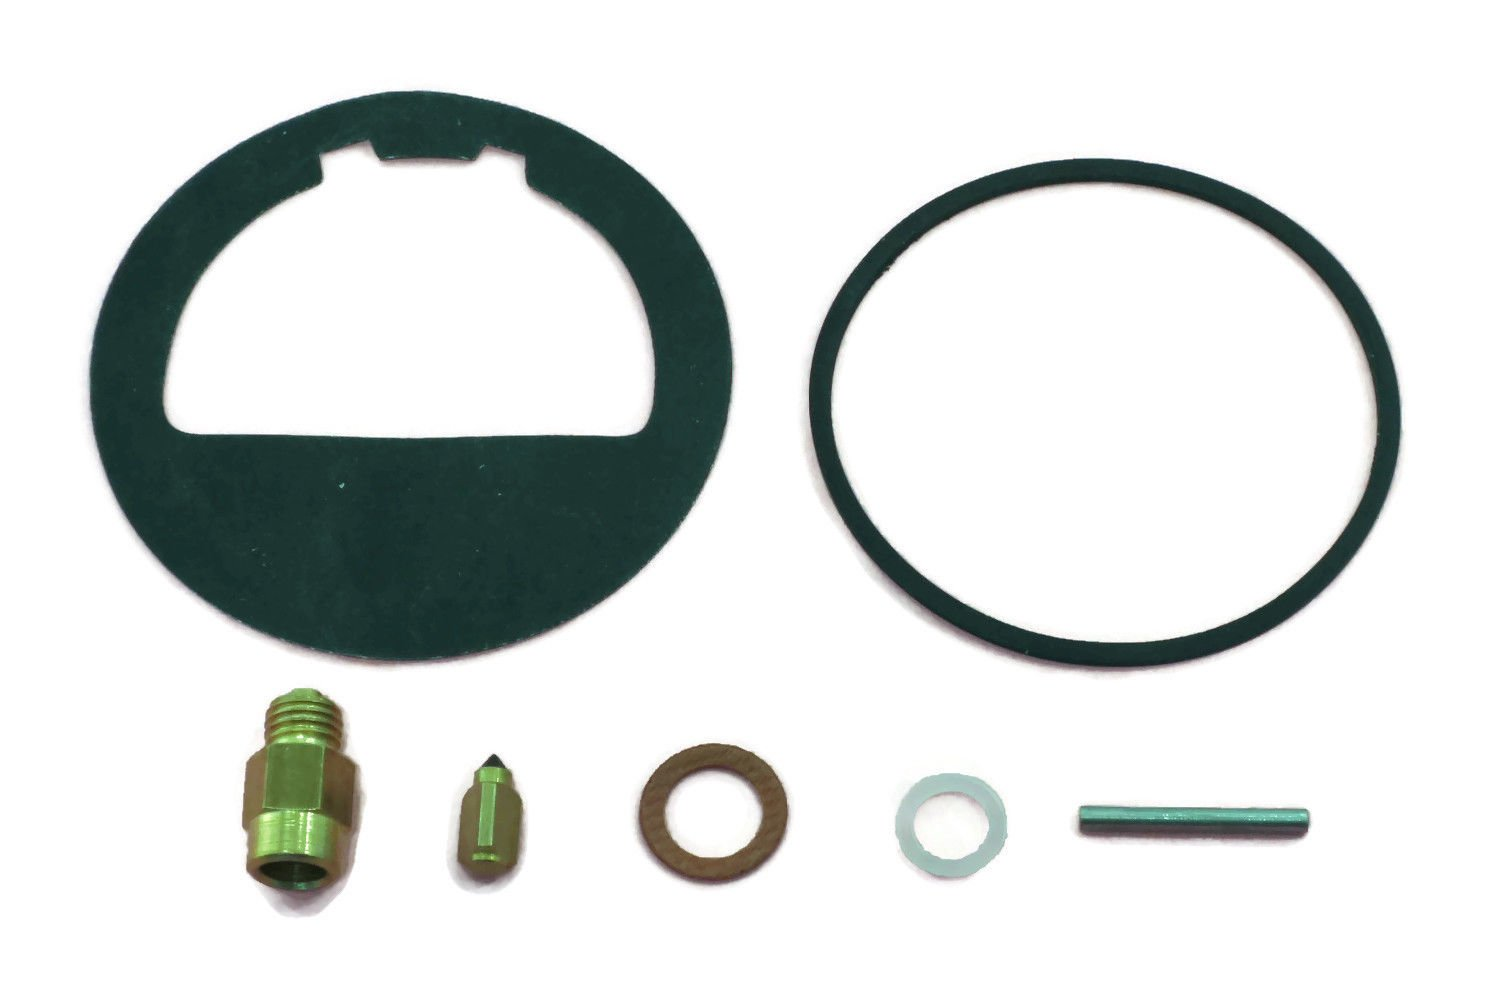 CARBURETOR Carb Repair Overhaul Rebuild Kit for Kohler K91 K141 K161 K181 K241